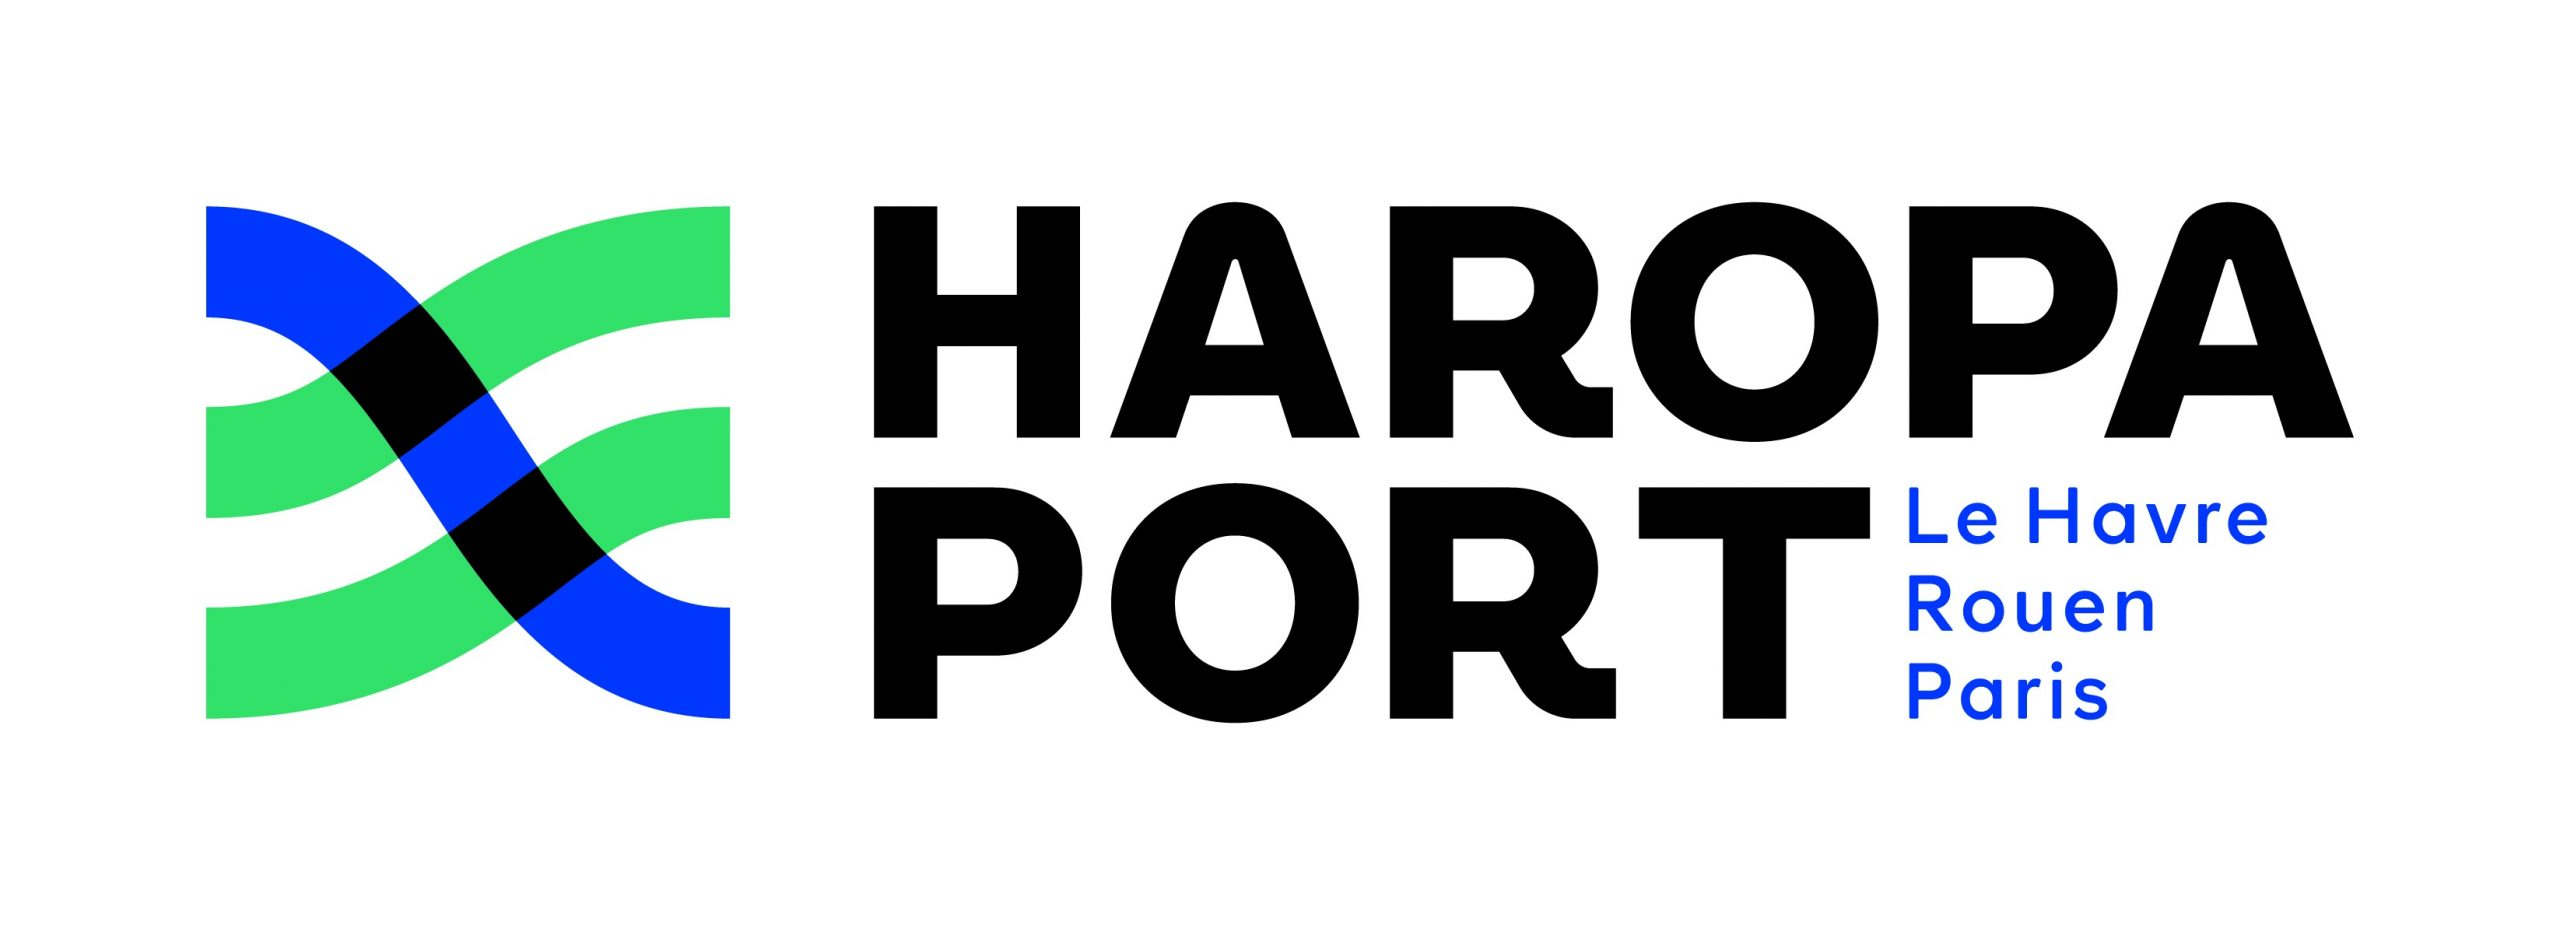 Le Havre to get shore power connections